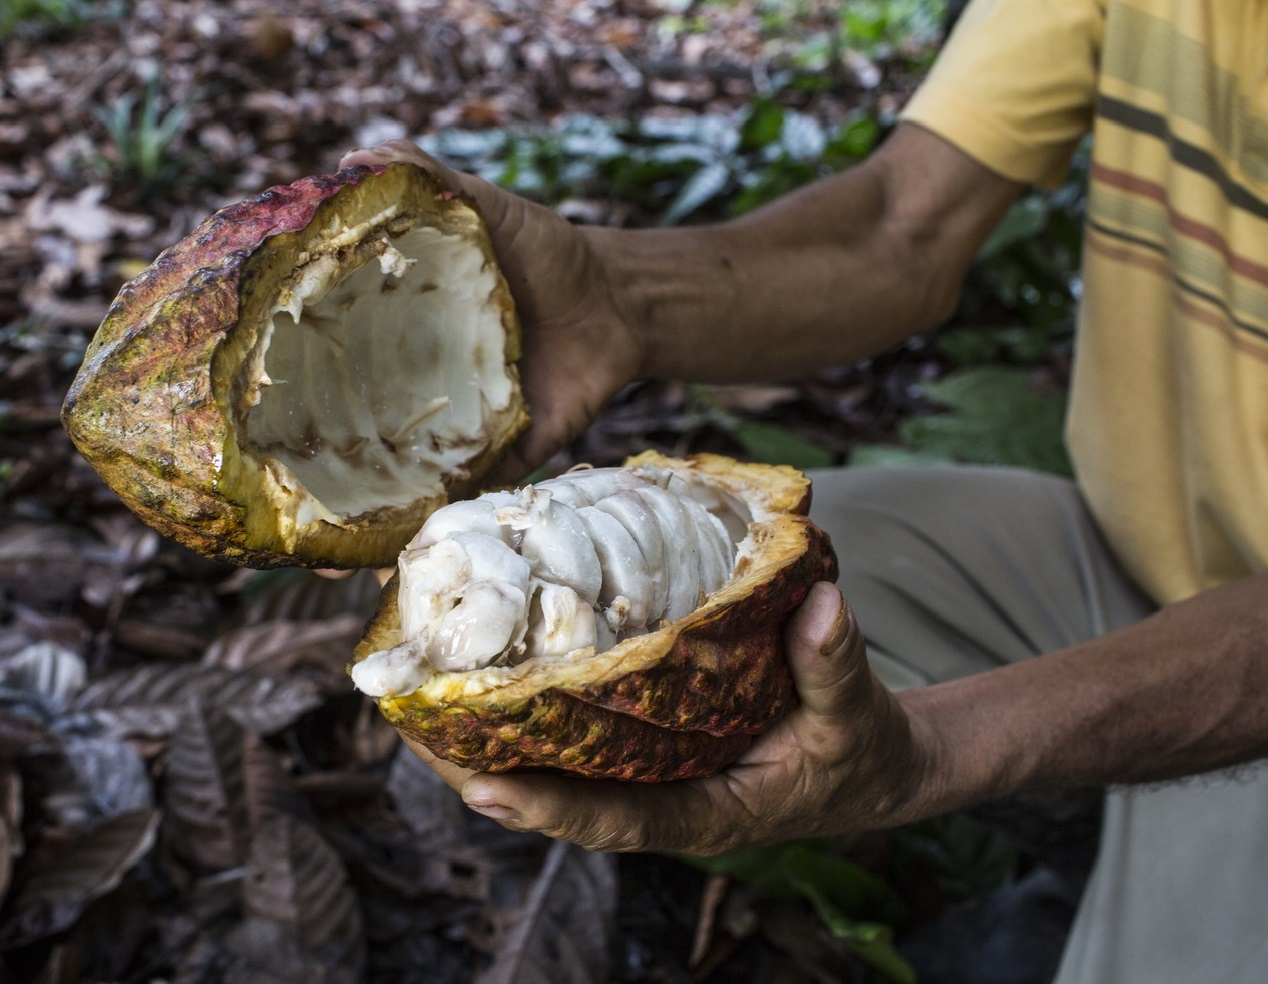 Over 60% of global cocoa production comes from a few countries in Western Africa. © Leslie Searles, GIZ